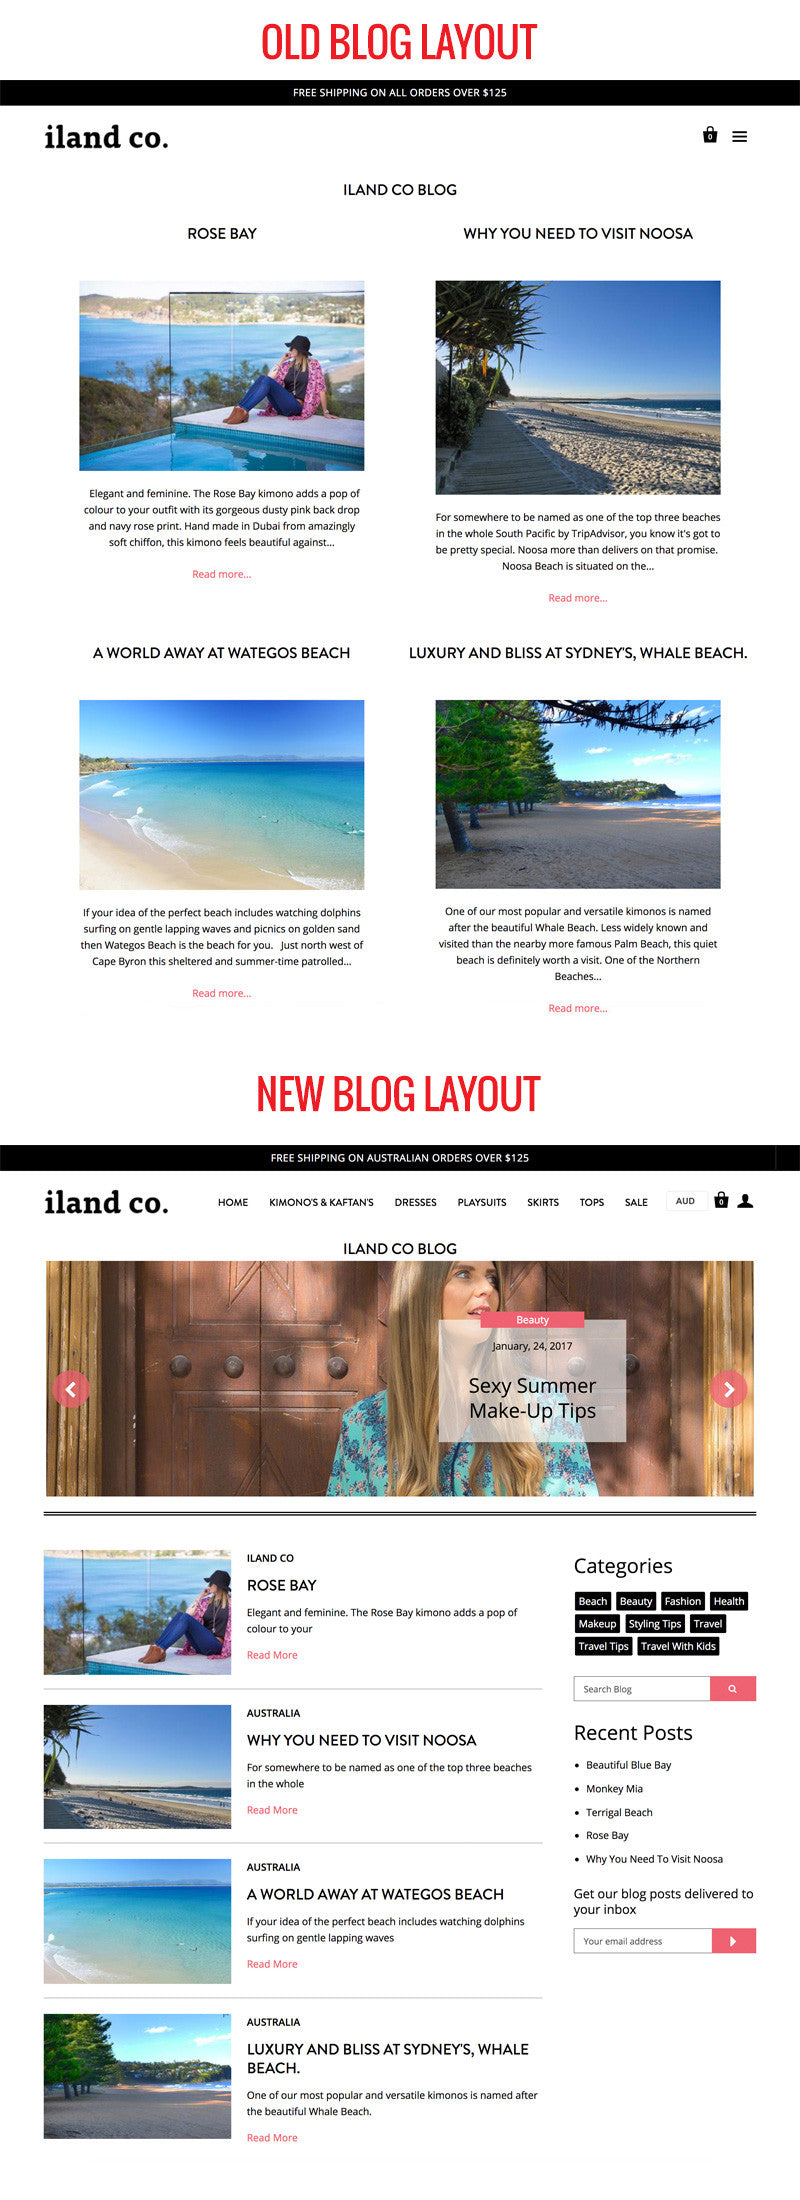 Shopify Blog Layout Case Study